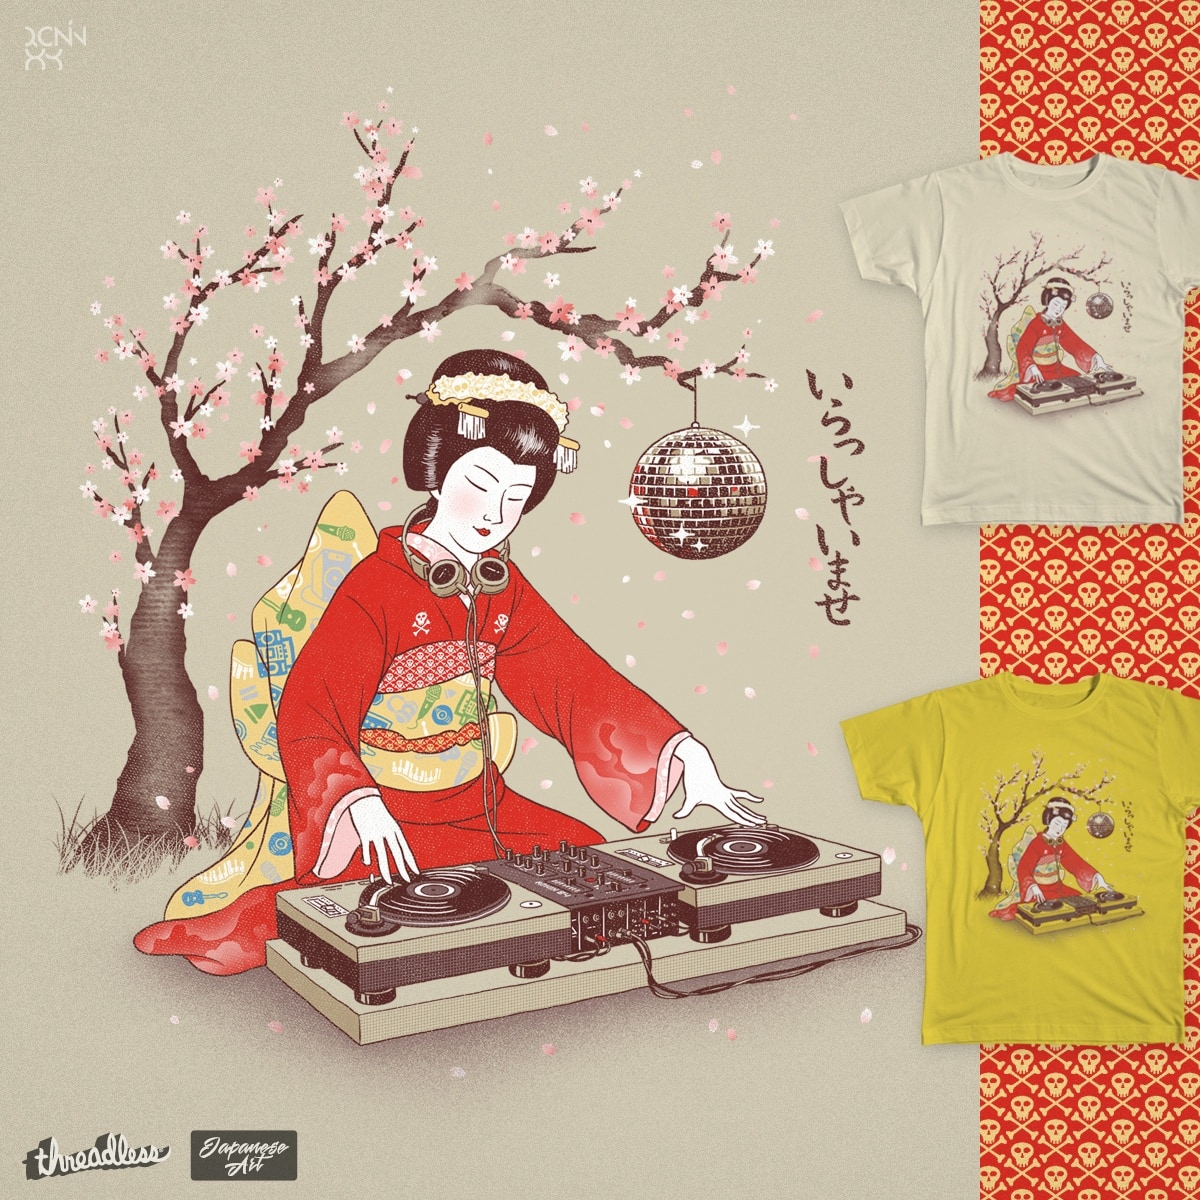 DJ Geisha by ronin84 on Threadless